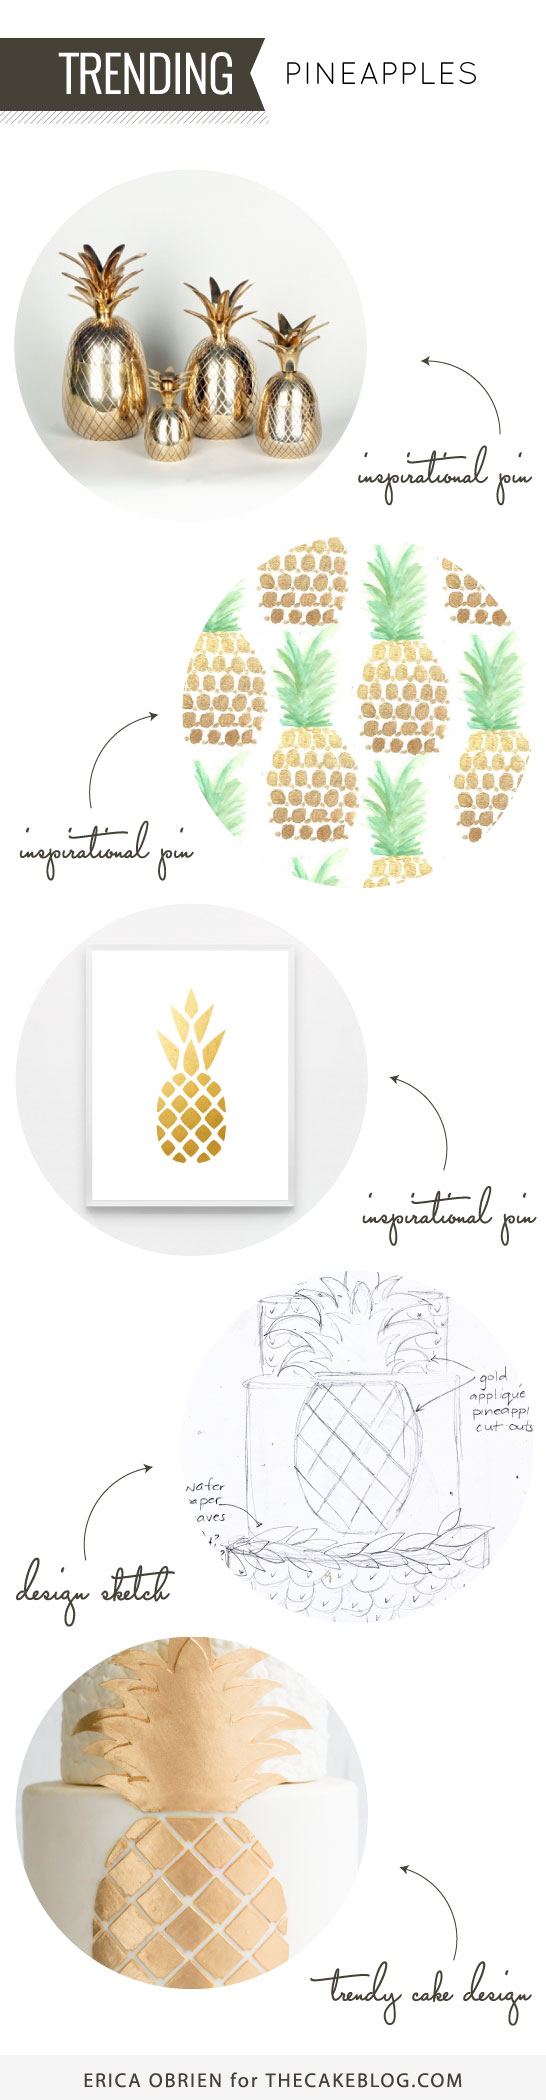 Pineapple Cake | translating trends into cake designs | by Erica OBrien for TheCakeBlog.com